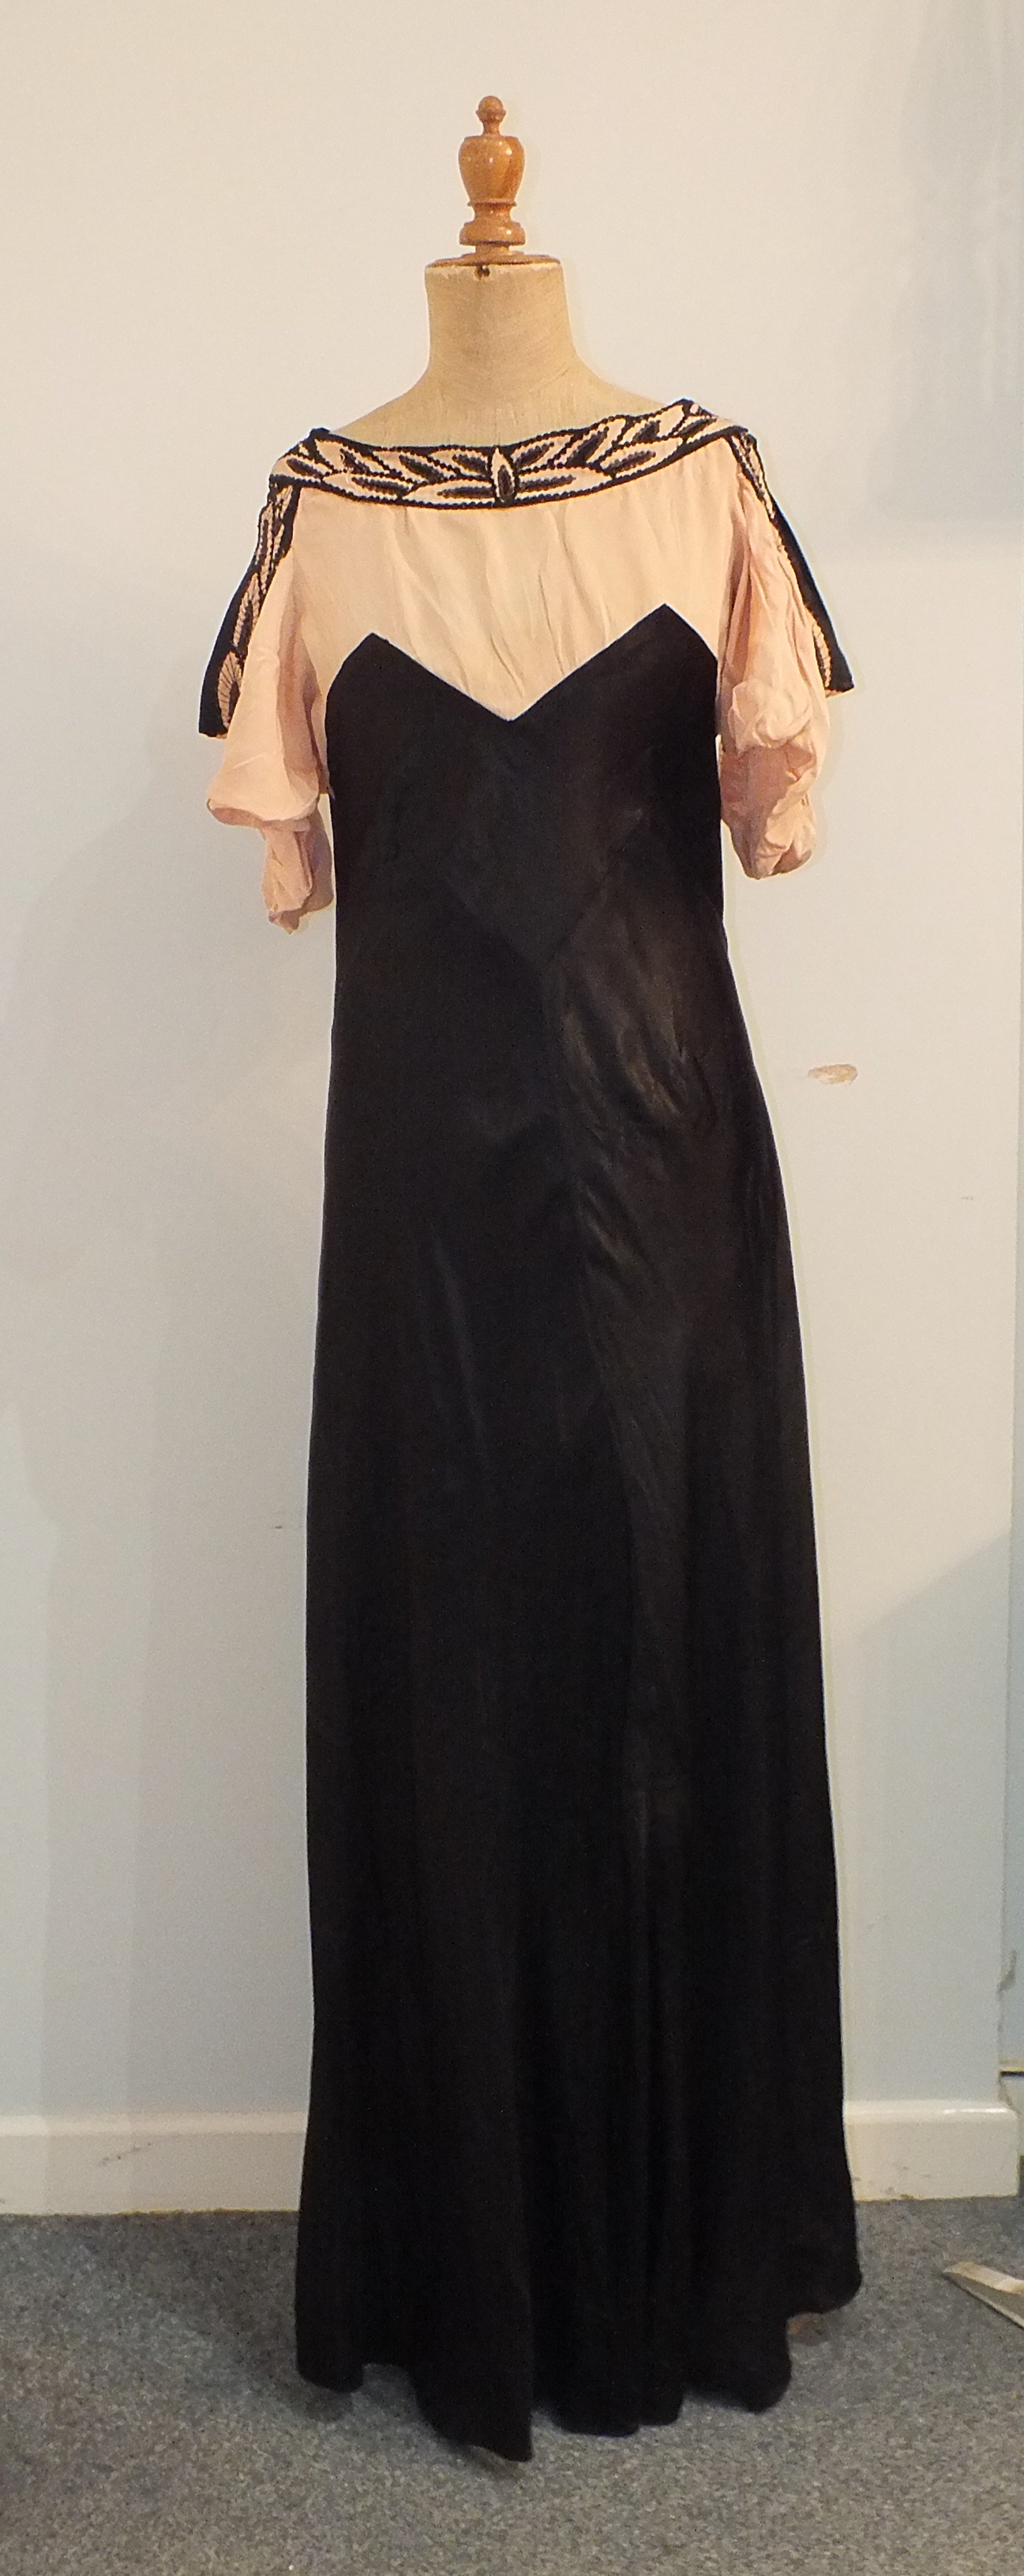 Lot 533A - Five 1930's/1940's evening dresses including a black and white printed silk chiffon dress with black